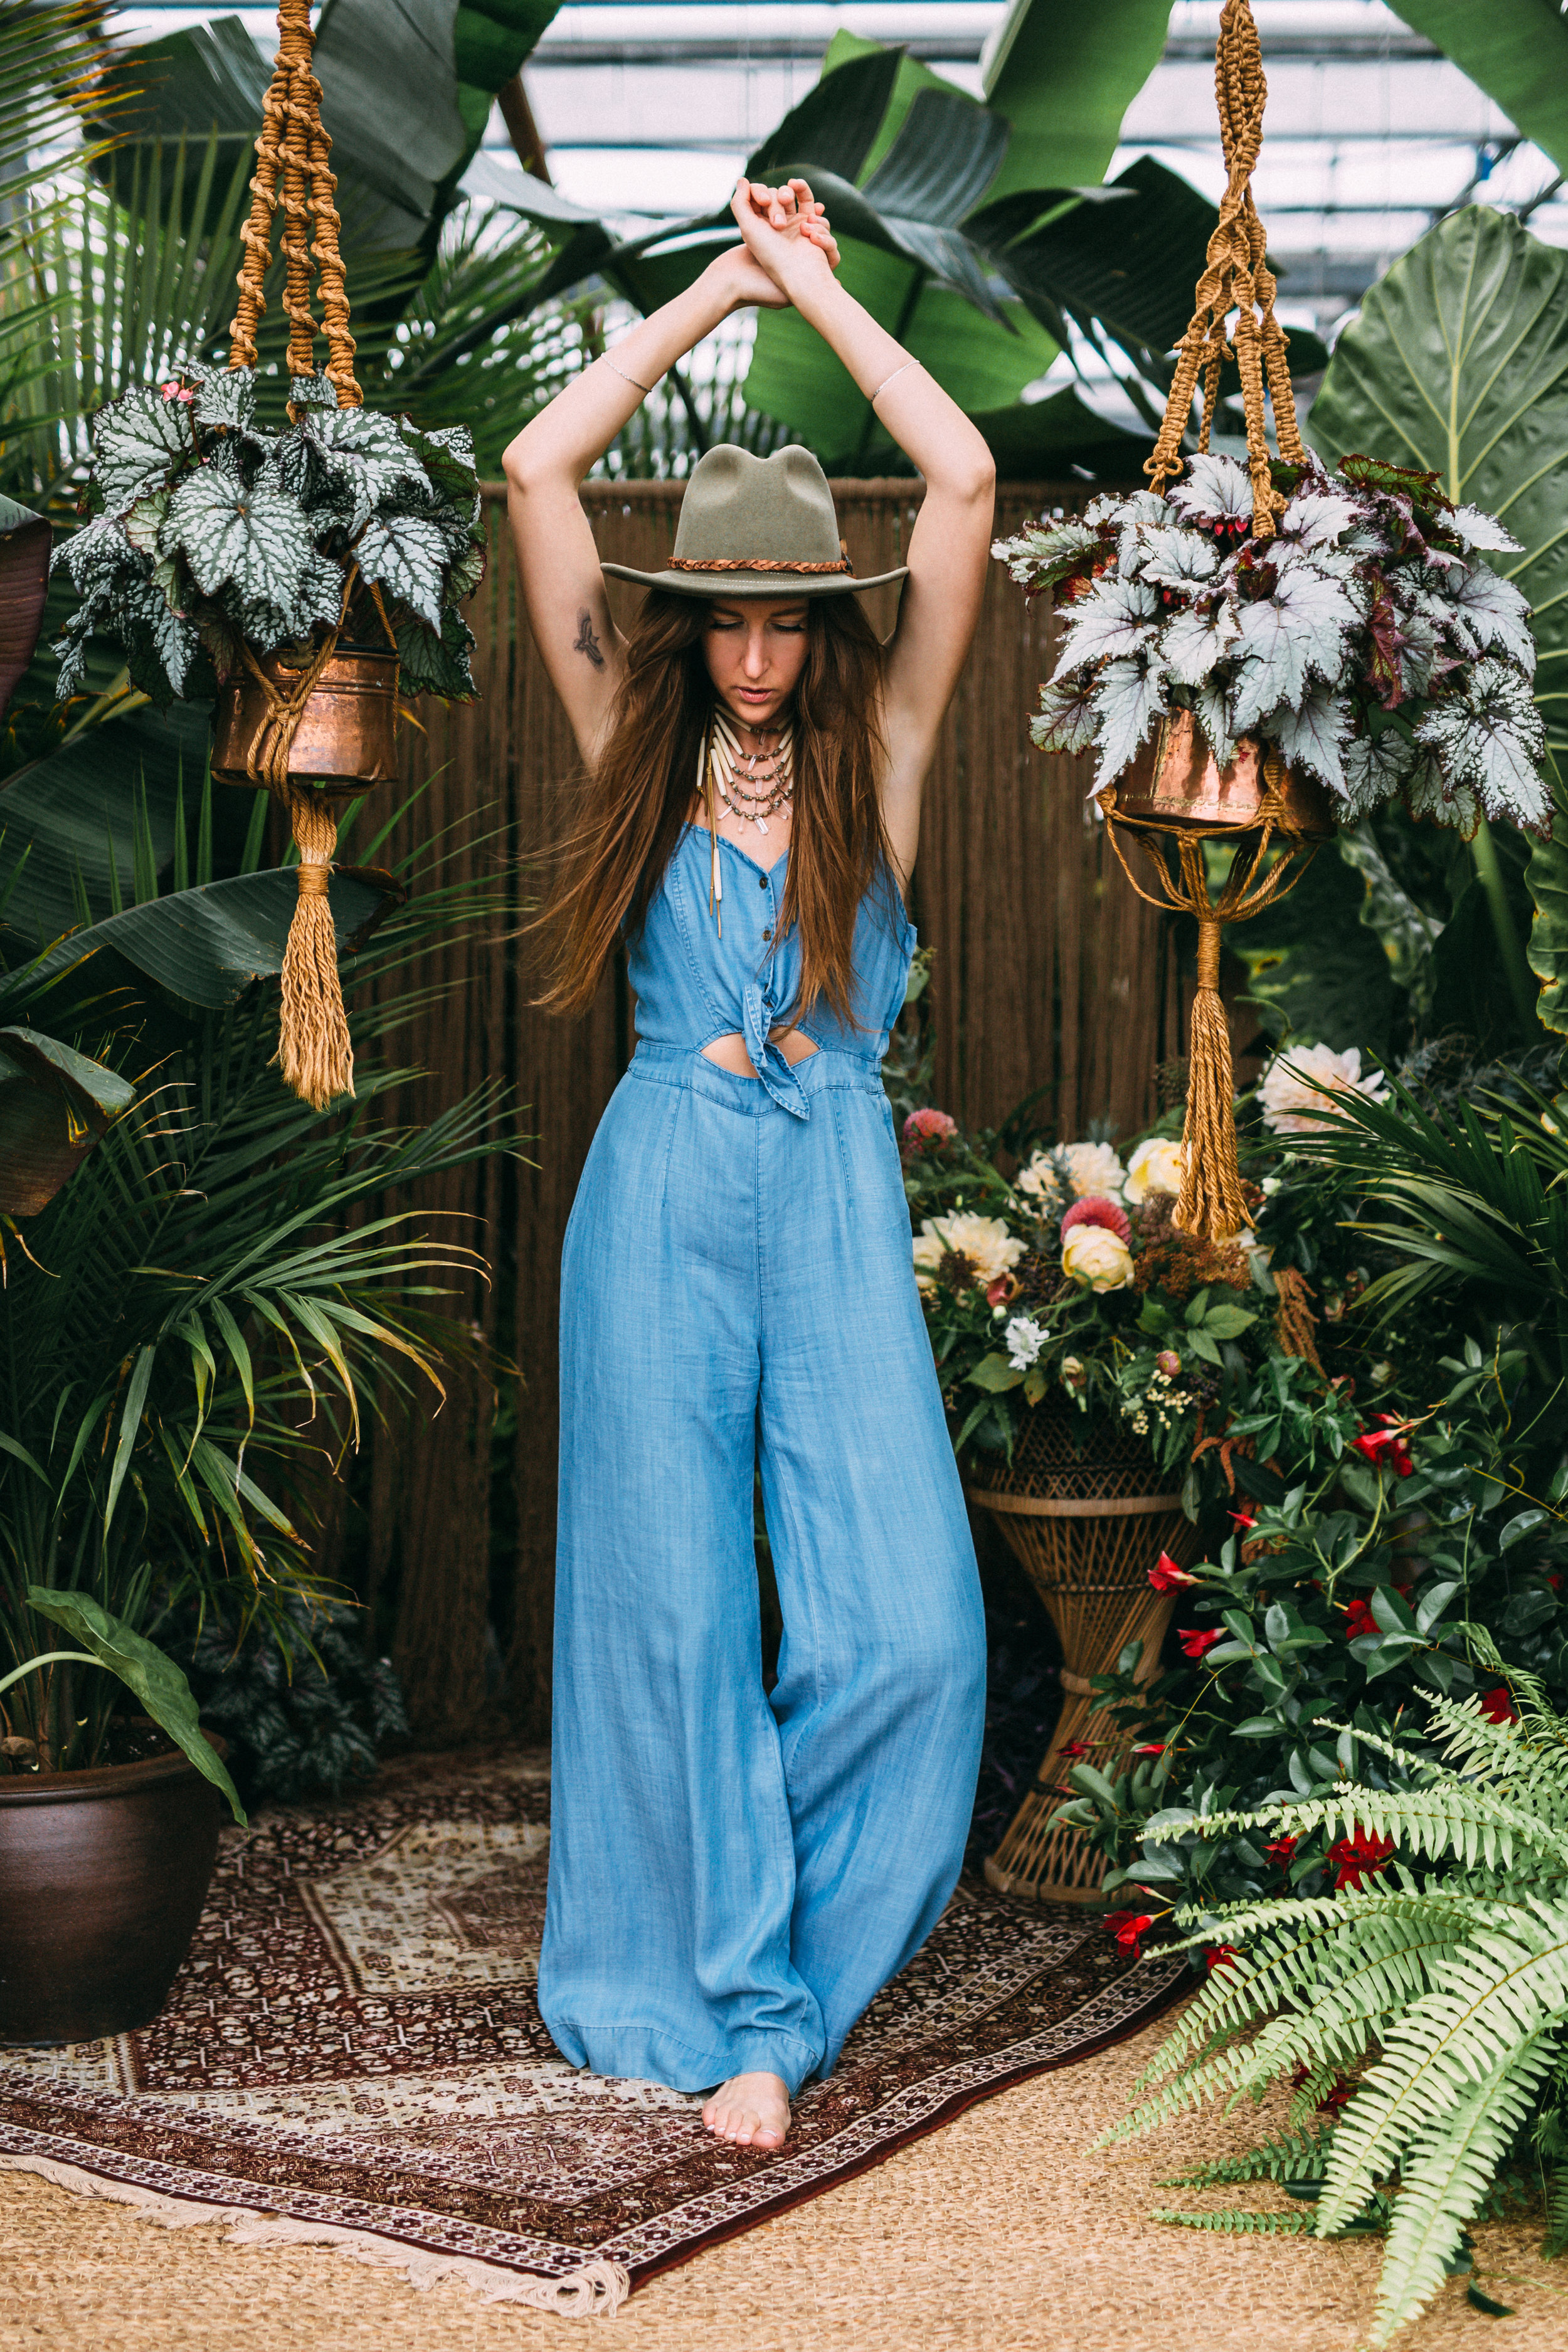 amanda cowley events niagara wedding planner free spirit styling bohemian style denim jumpsuit bell bottoms